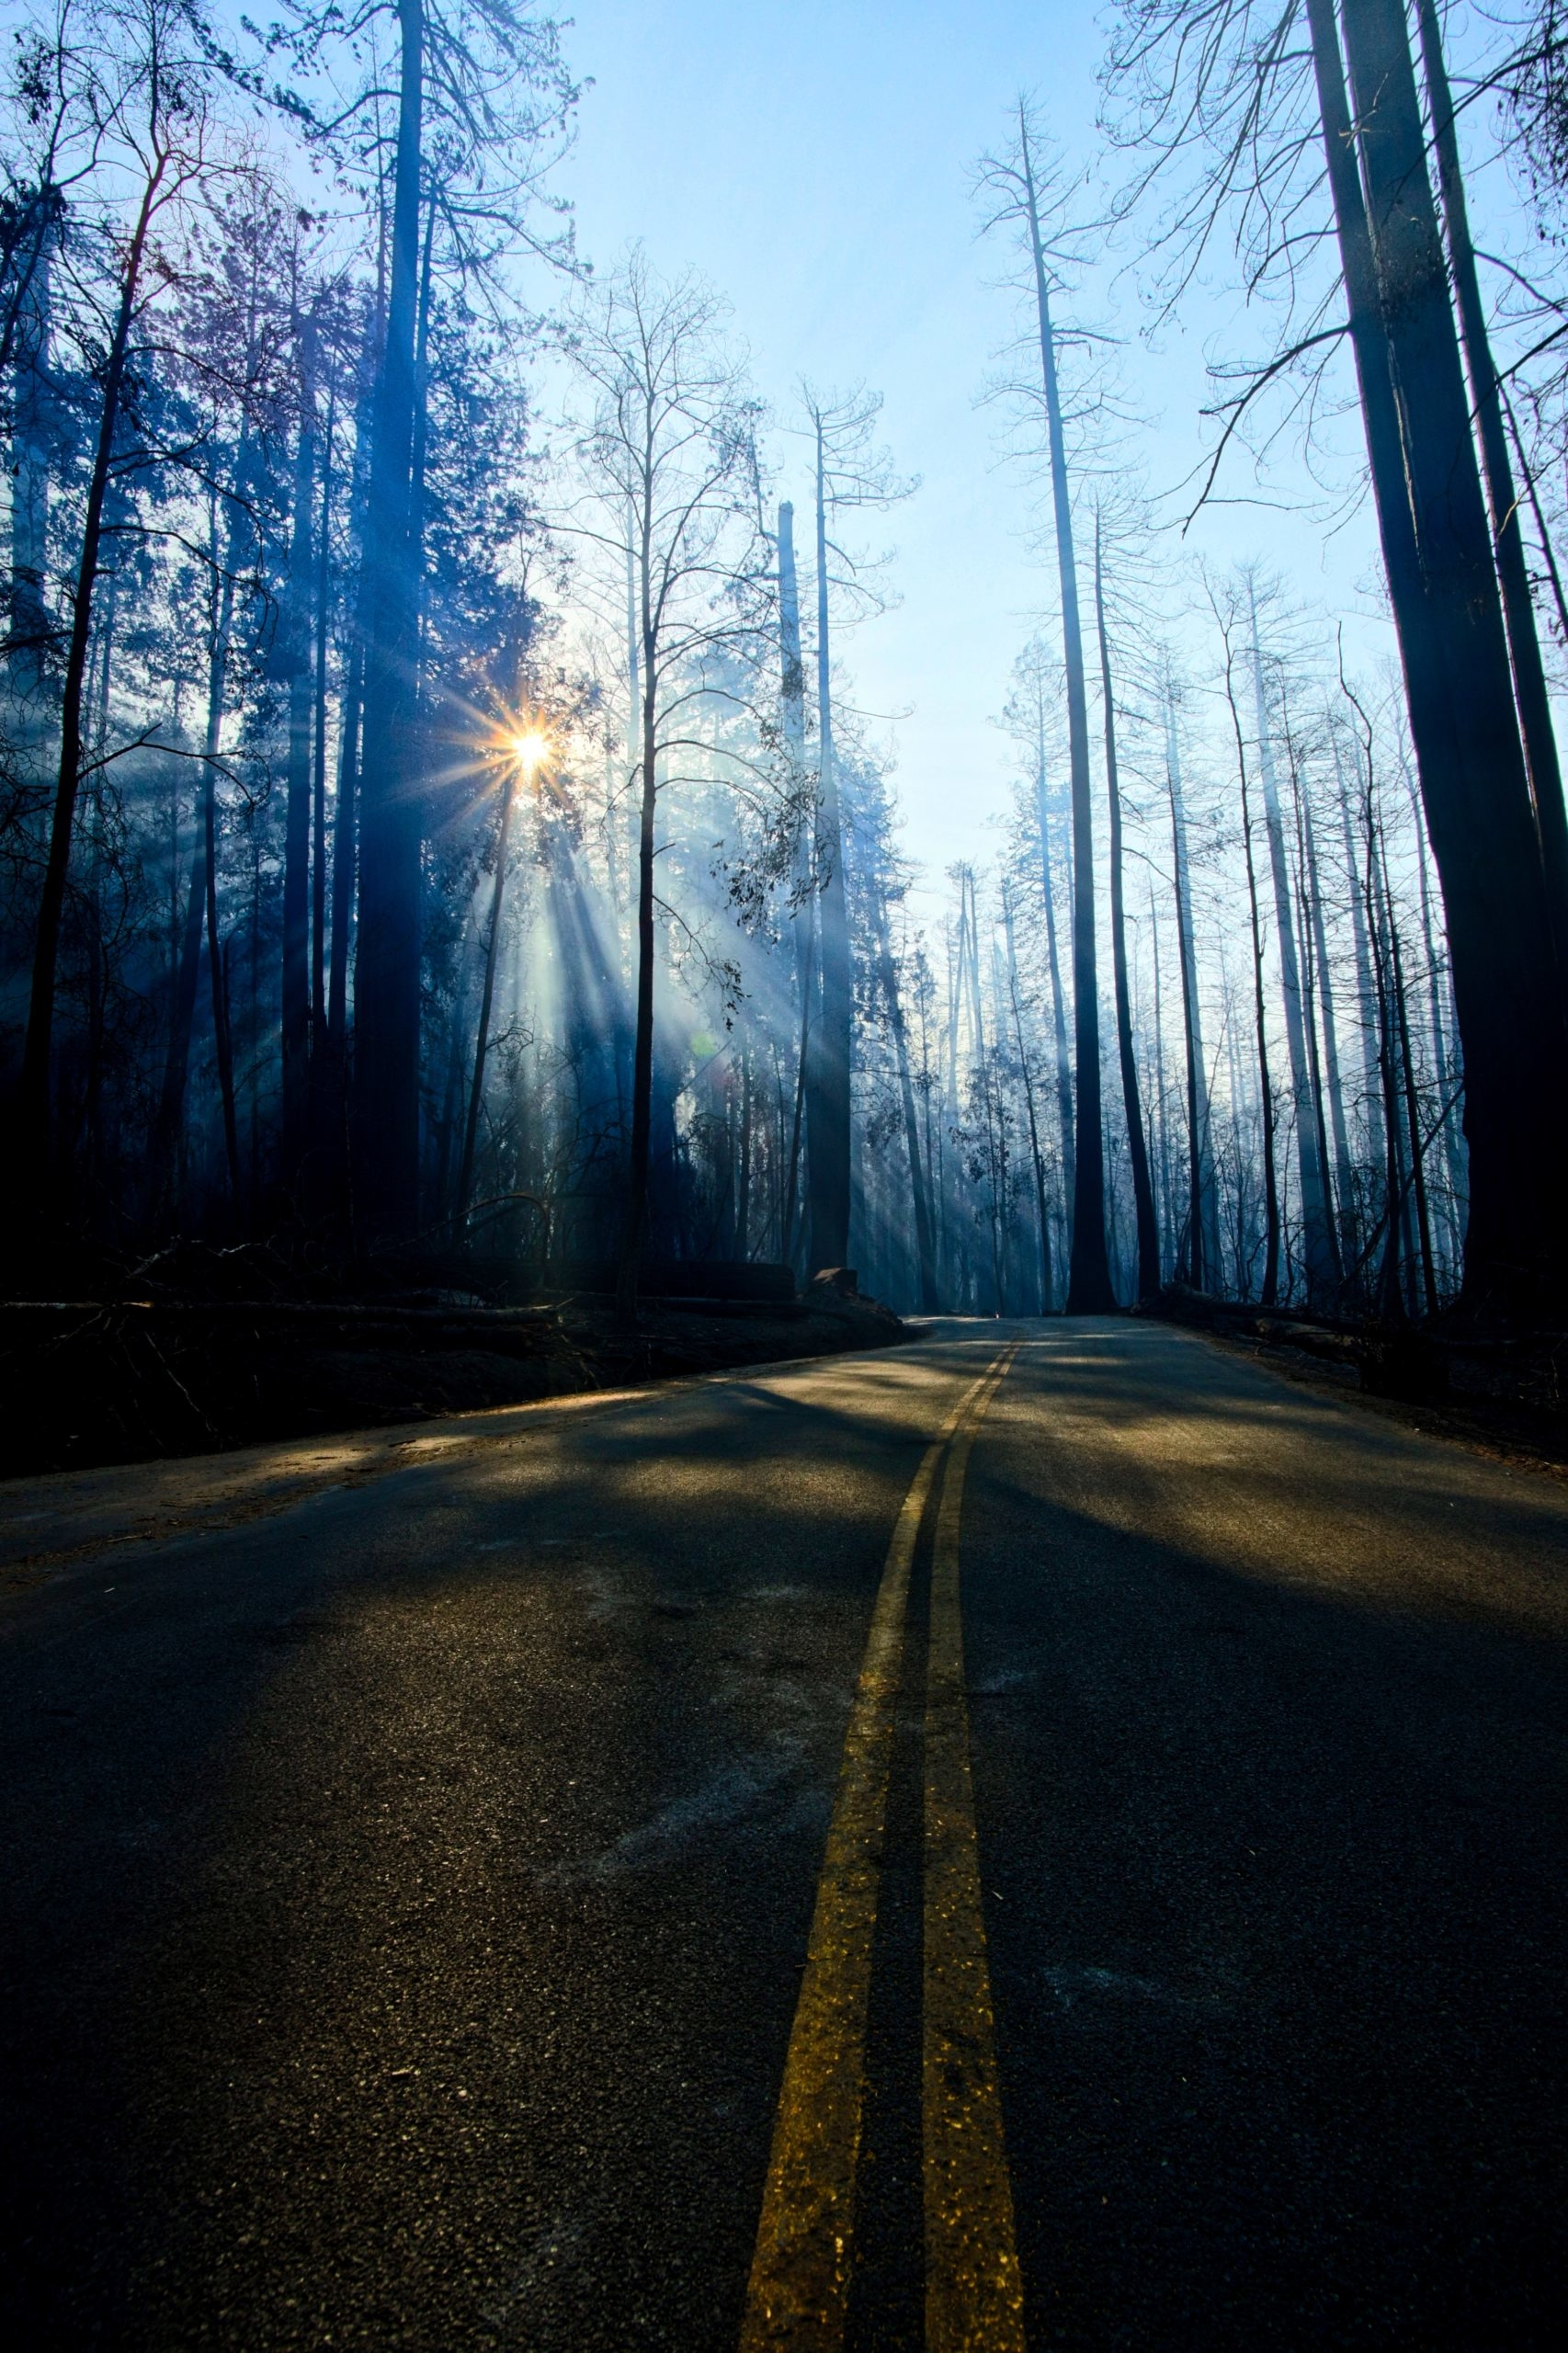 A road weaves through burned trees, with the sun shining through the smoky air, creating rays of white light.